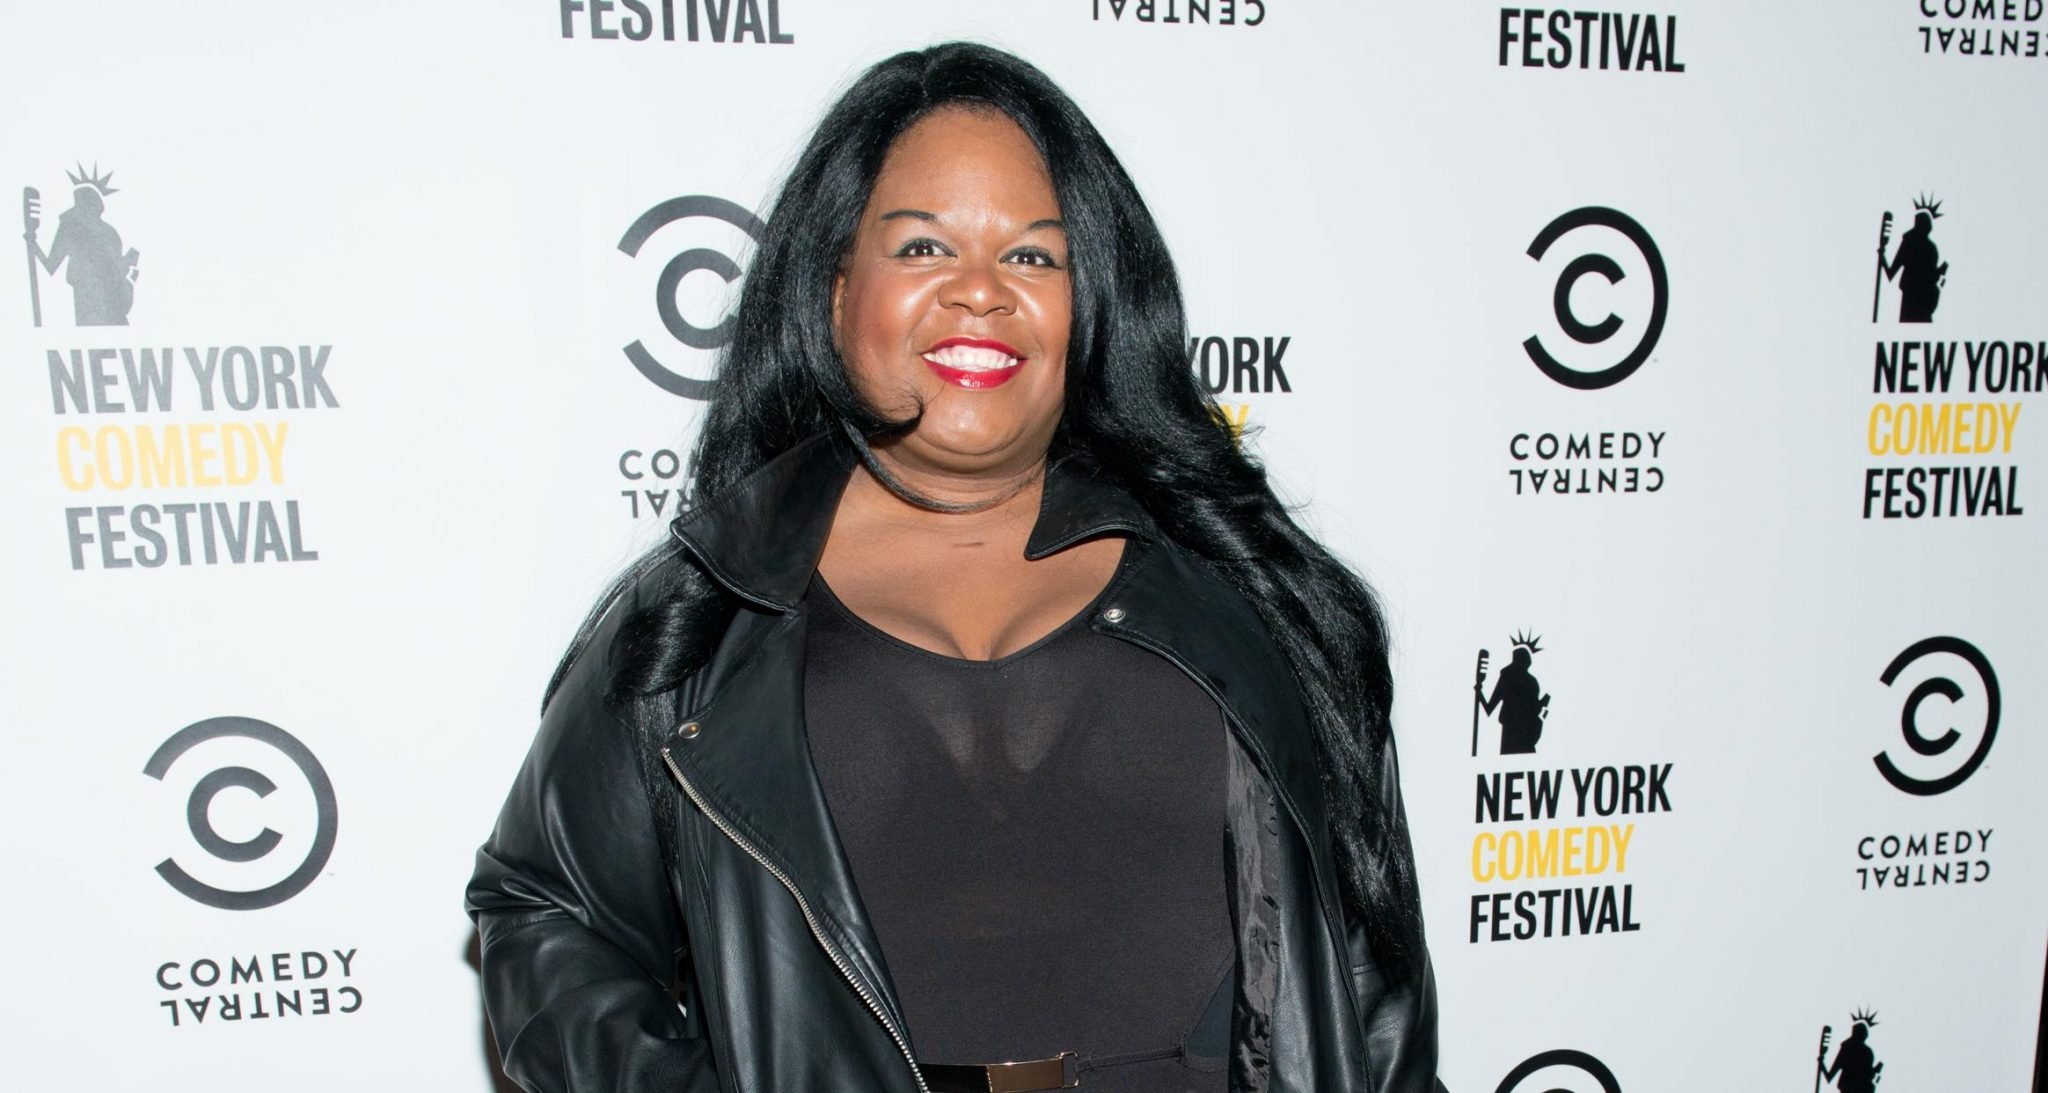 Yamaneika Saunders at Comedy Central's New York Comedy Festival kick-off party